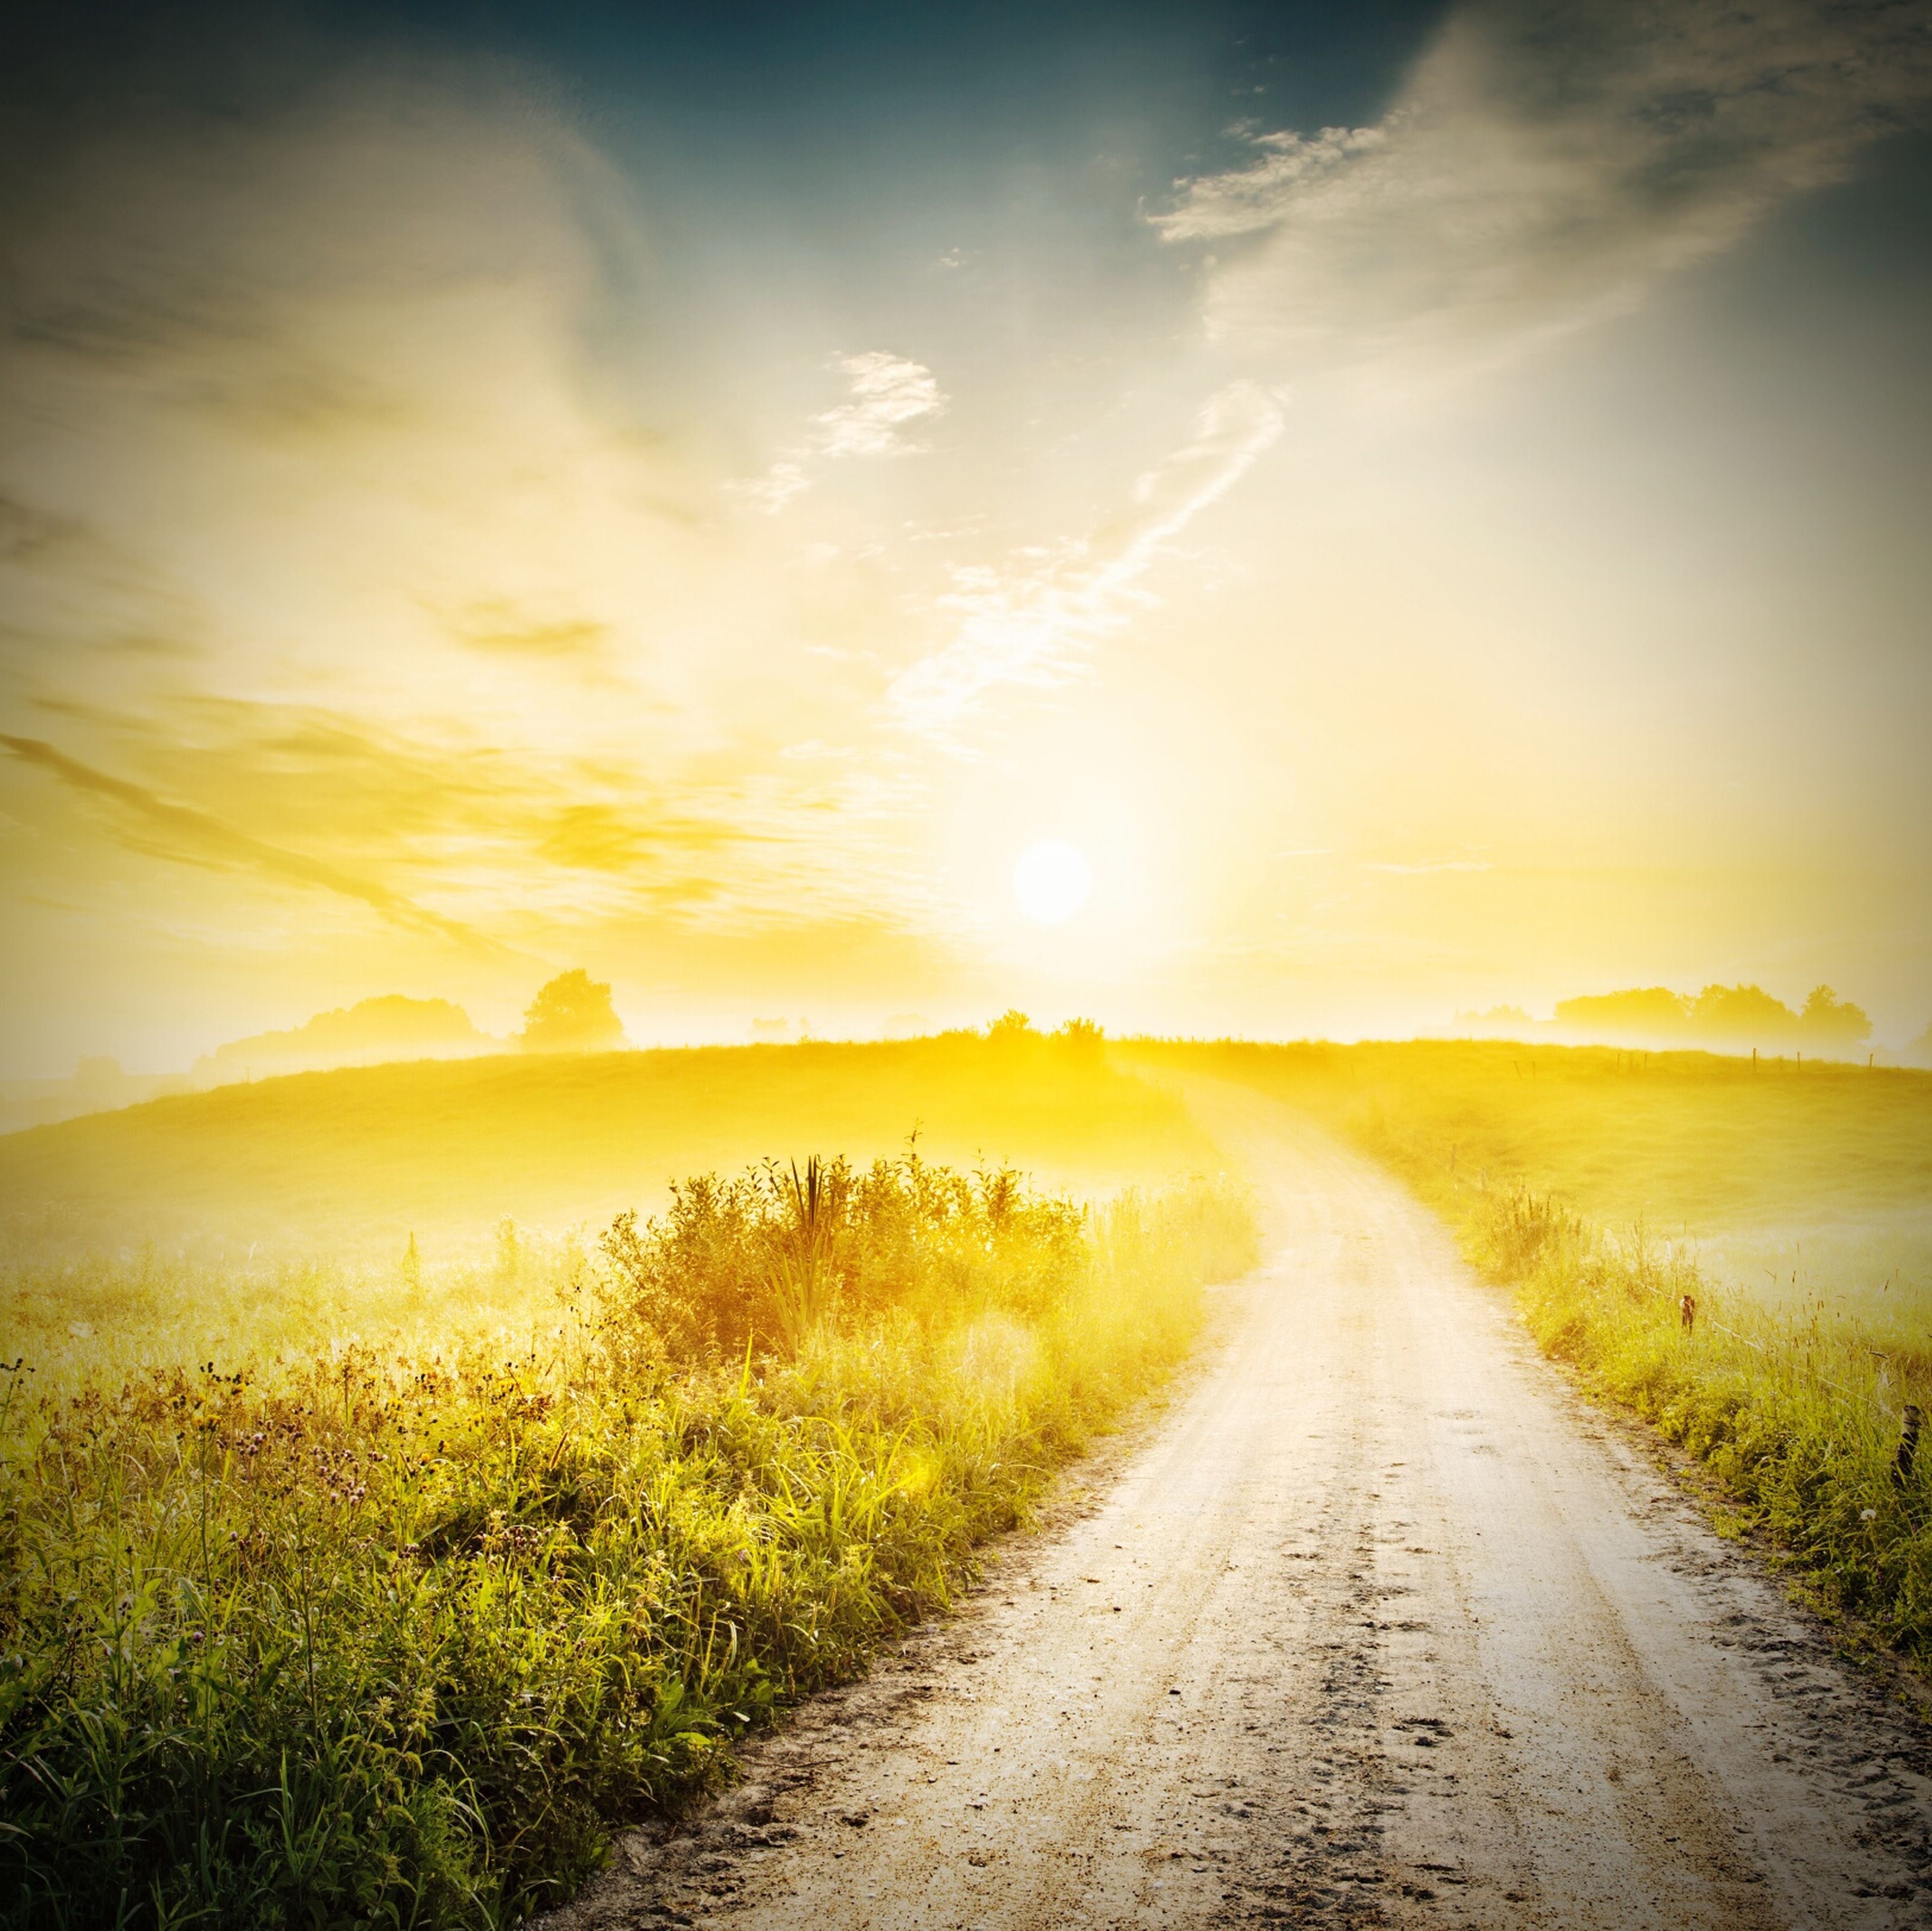 the way forward, tranquil scene, sky, tranquility, diminishing perspective, sunset, scenics, beauty in nature, vanishing point, road, grass, nature, water, dirt road, landscape, sun, field, country road, cloud - sky, idyllic